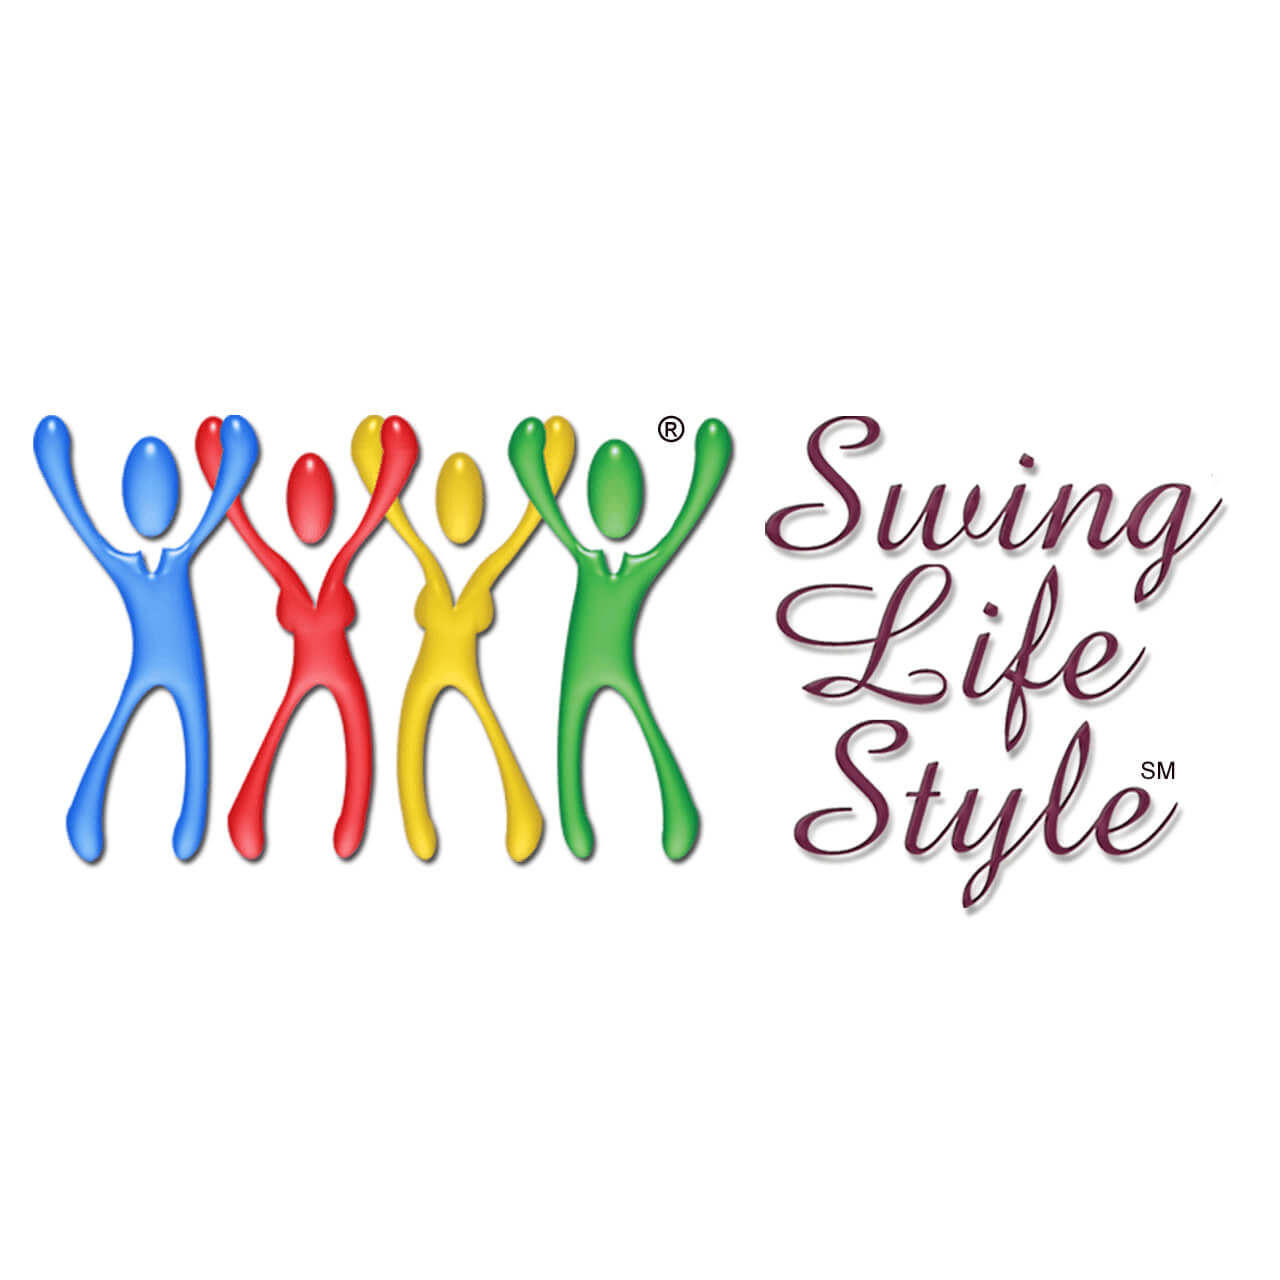 SwingLifestyle Review (2021 Update)